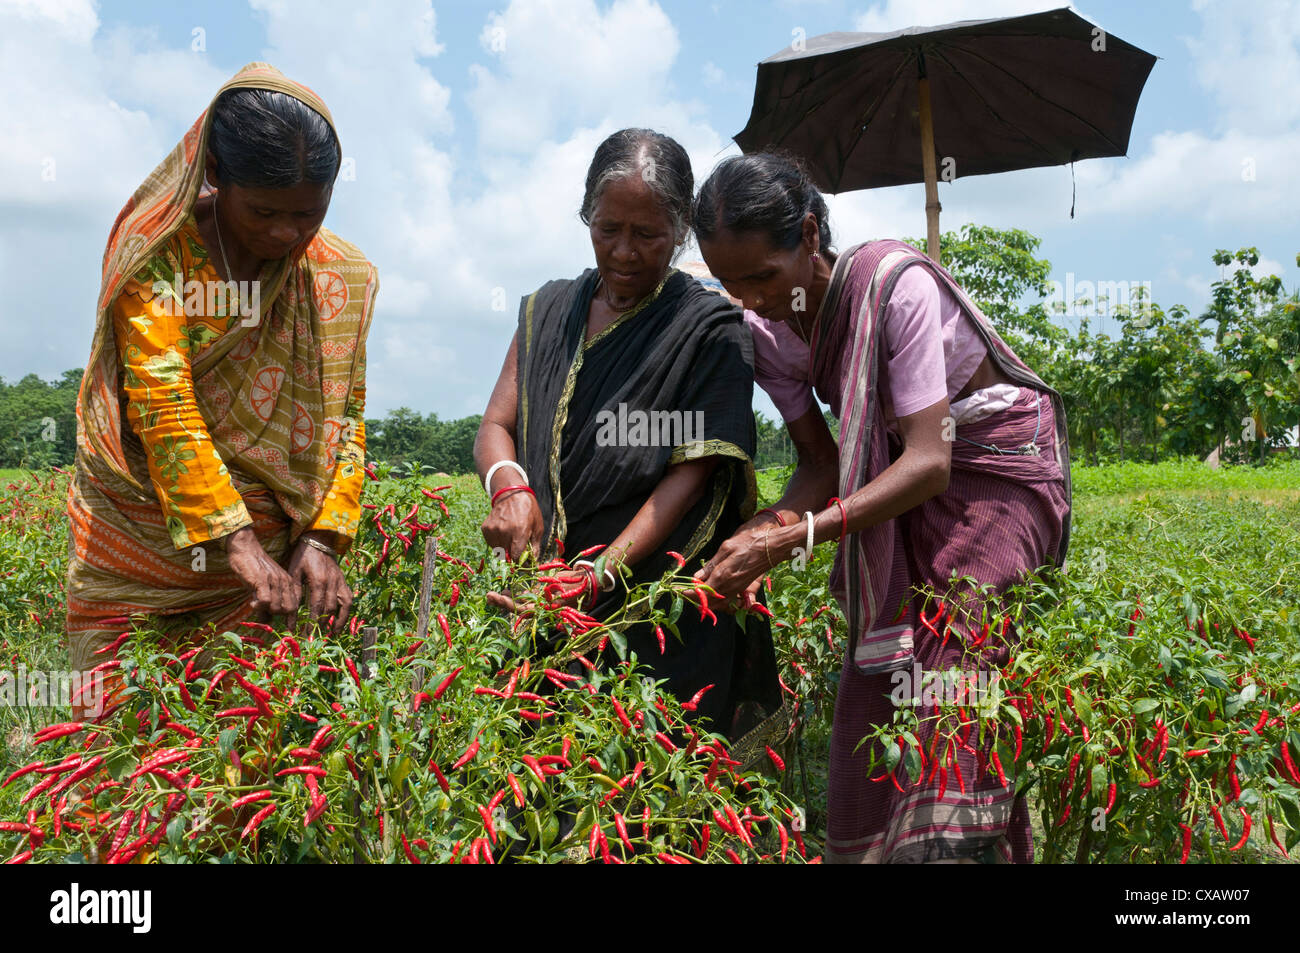 Female farmer harvesting red chili, Koch Bihar, West Bengal, India, Asia - Stock Image